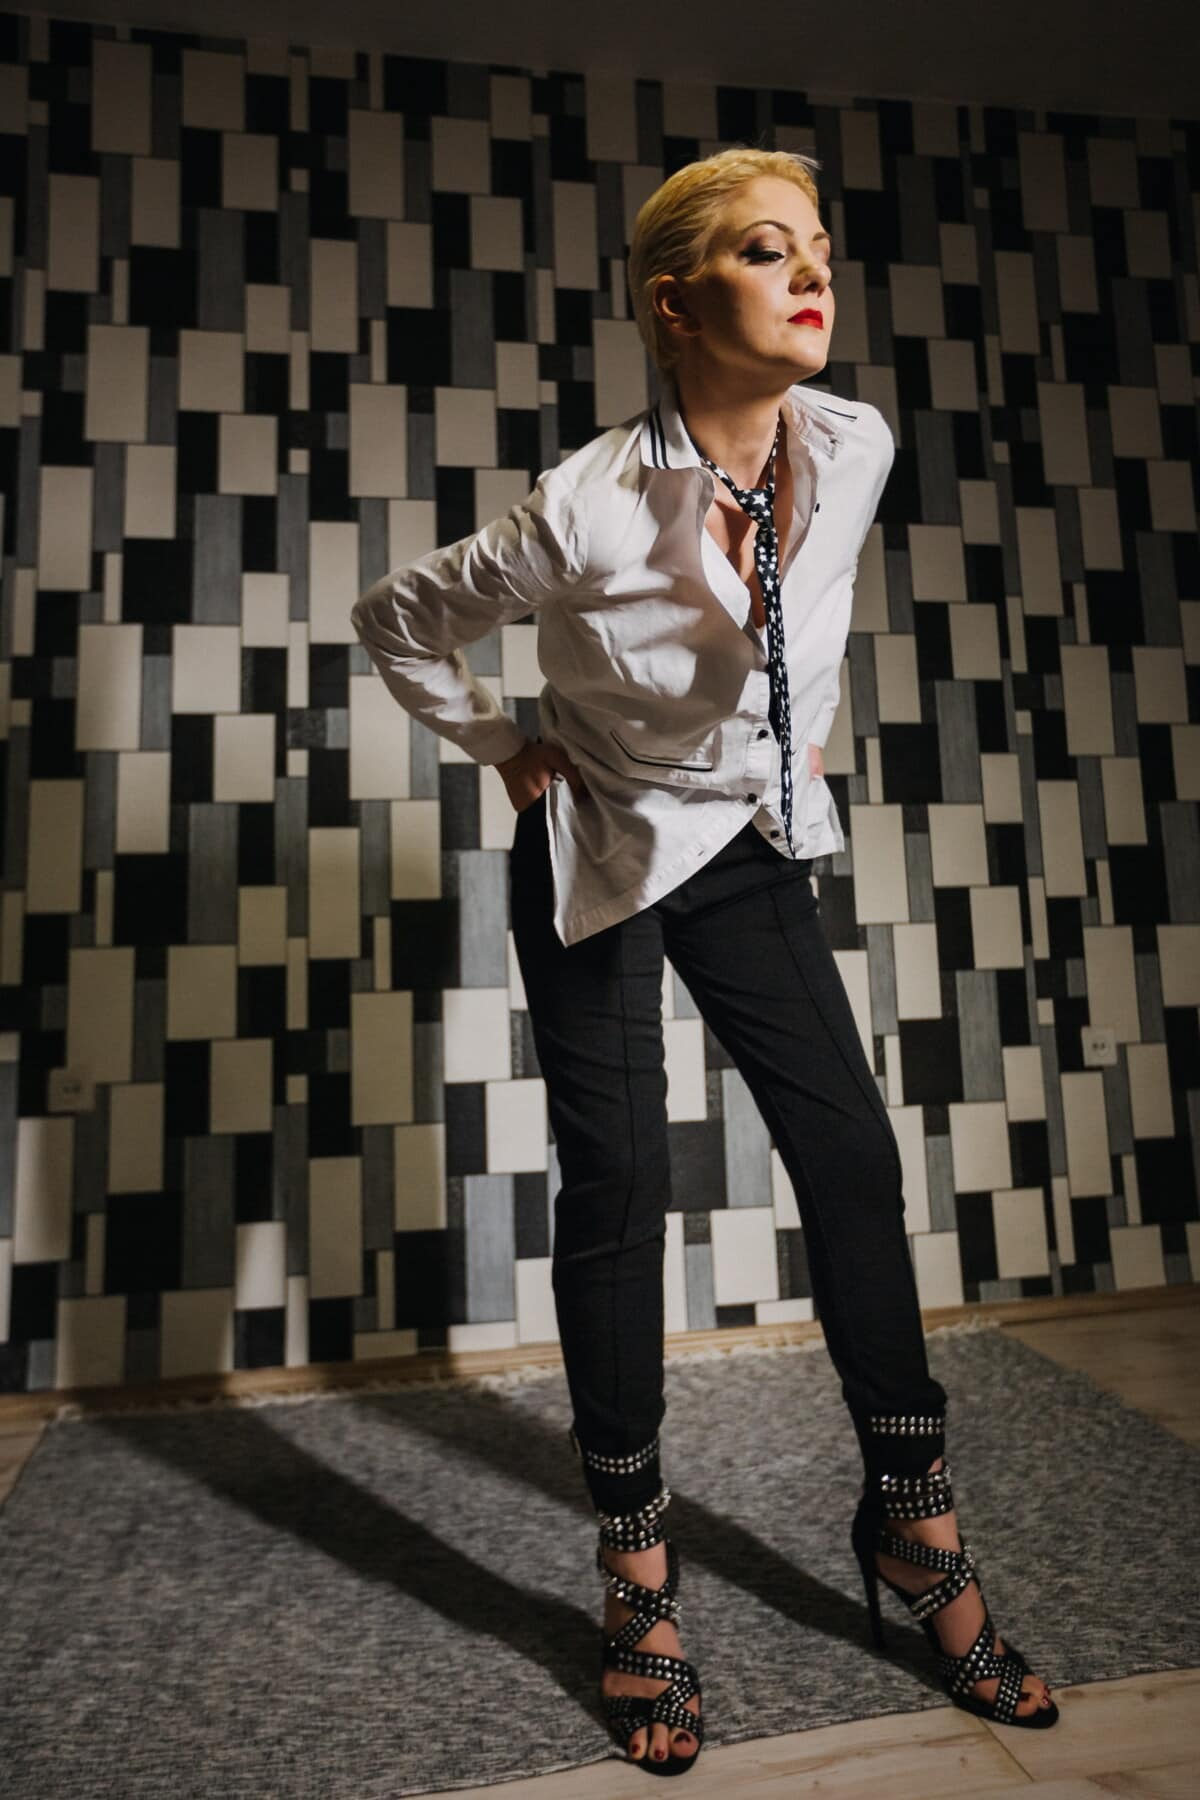 slim, businesswoman, young woman, body, tie, pants, shirt, business, outfit, trendy